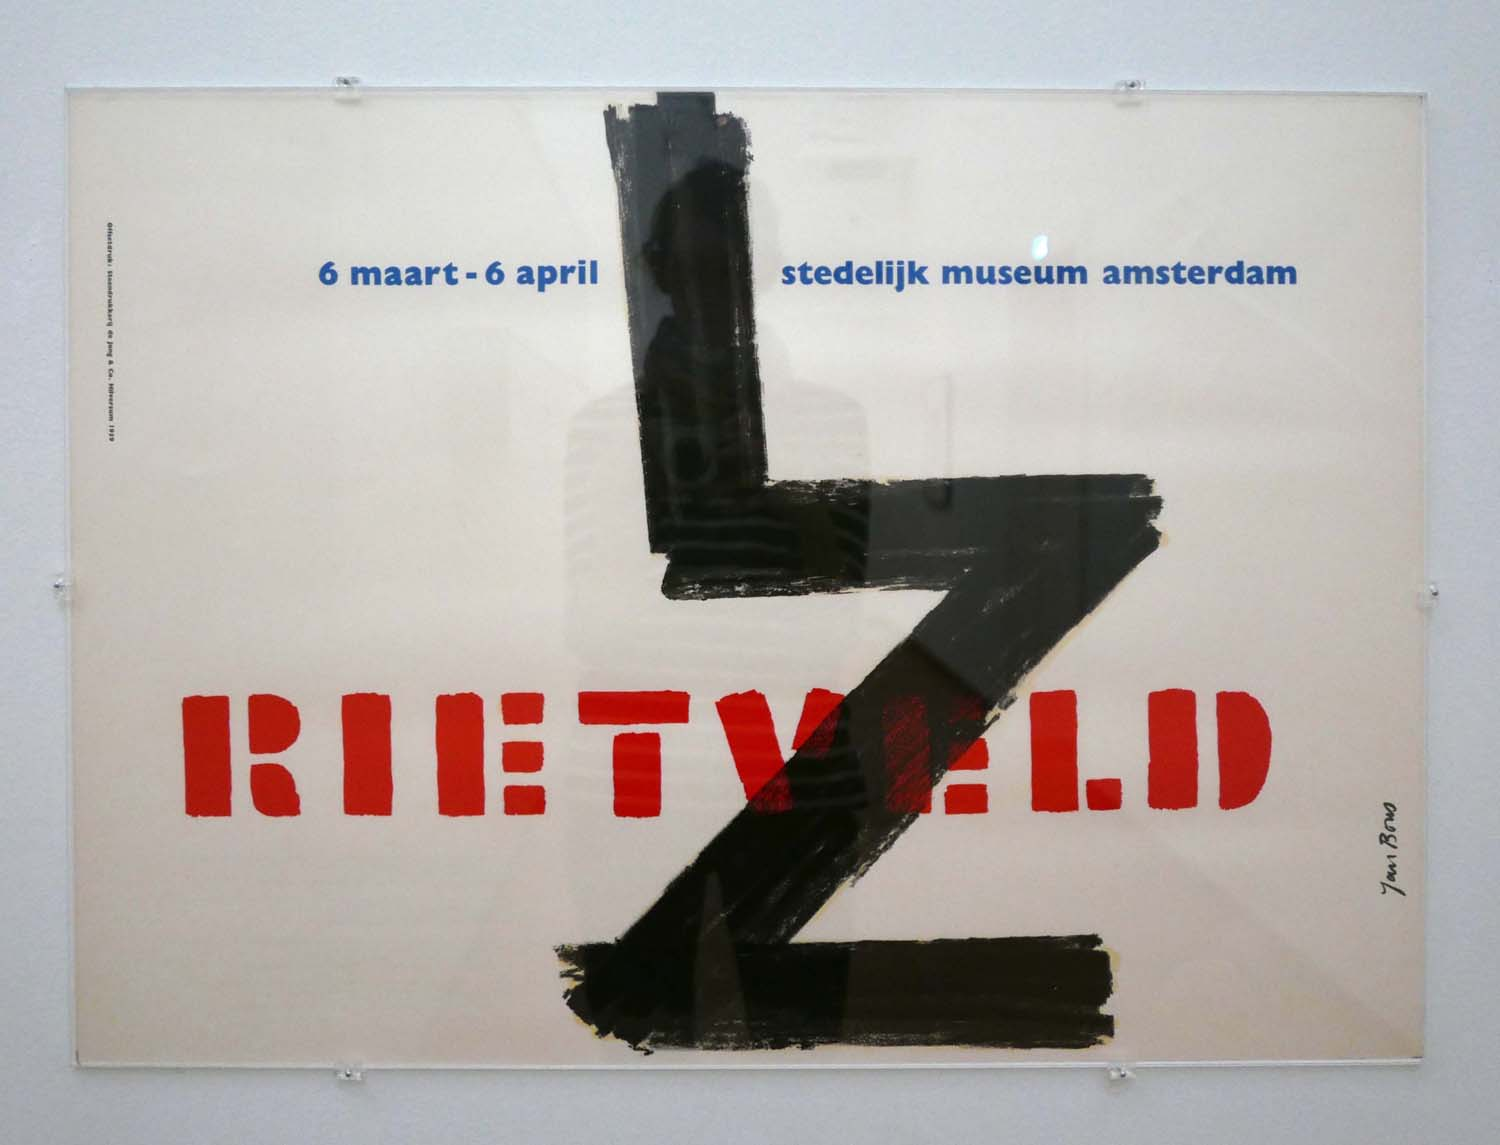 Poster for a Rietveld exhibition